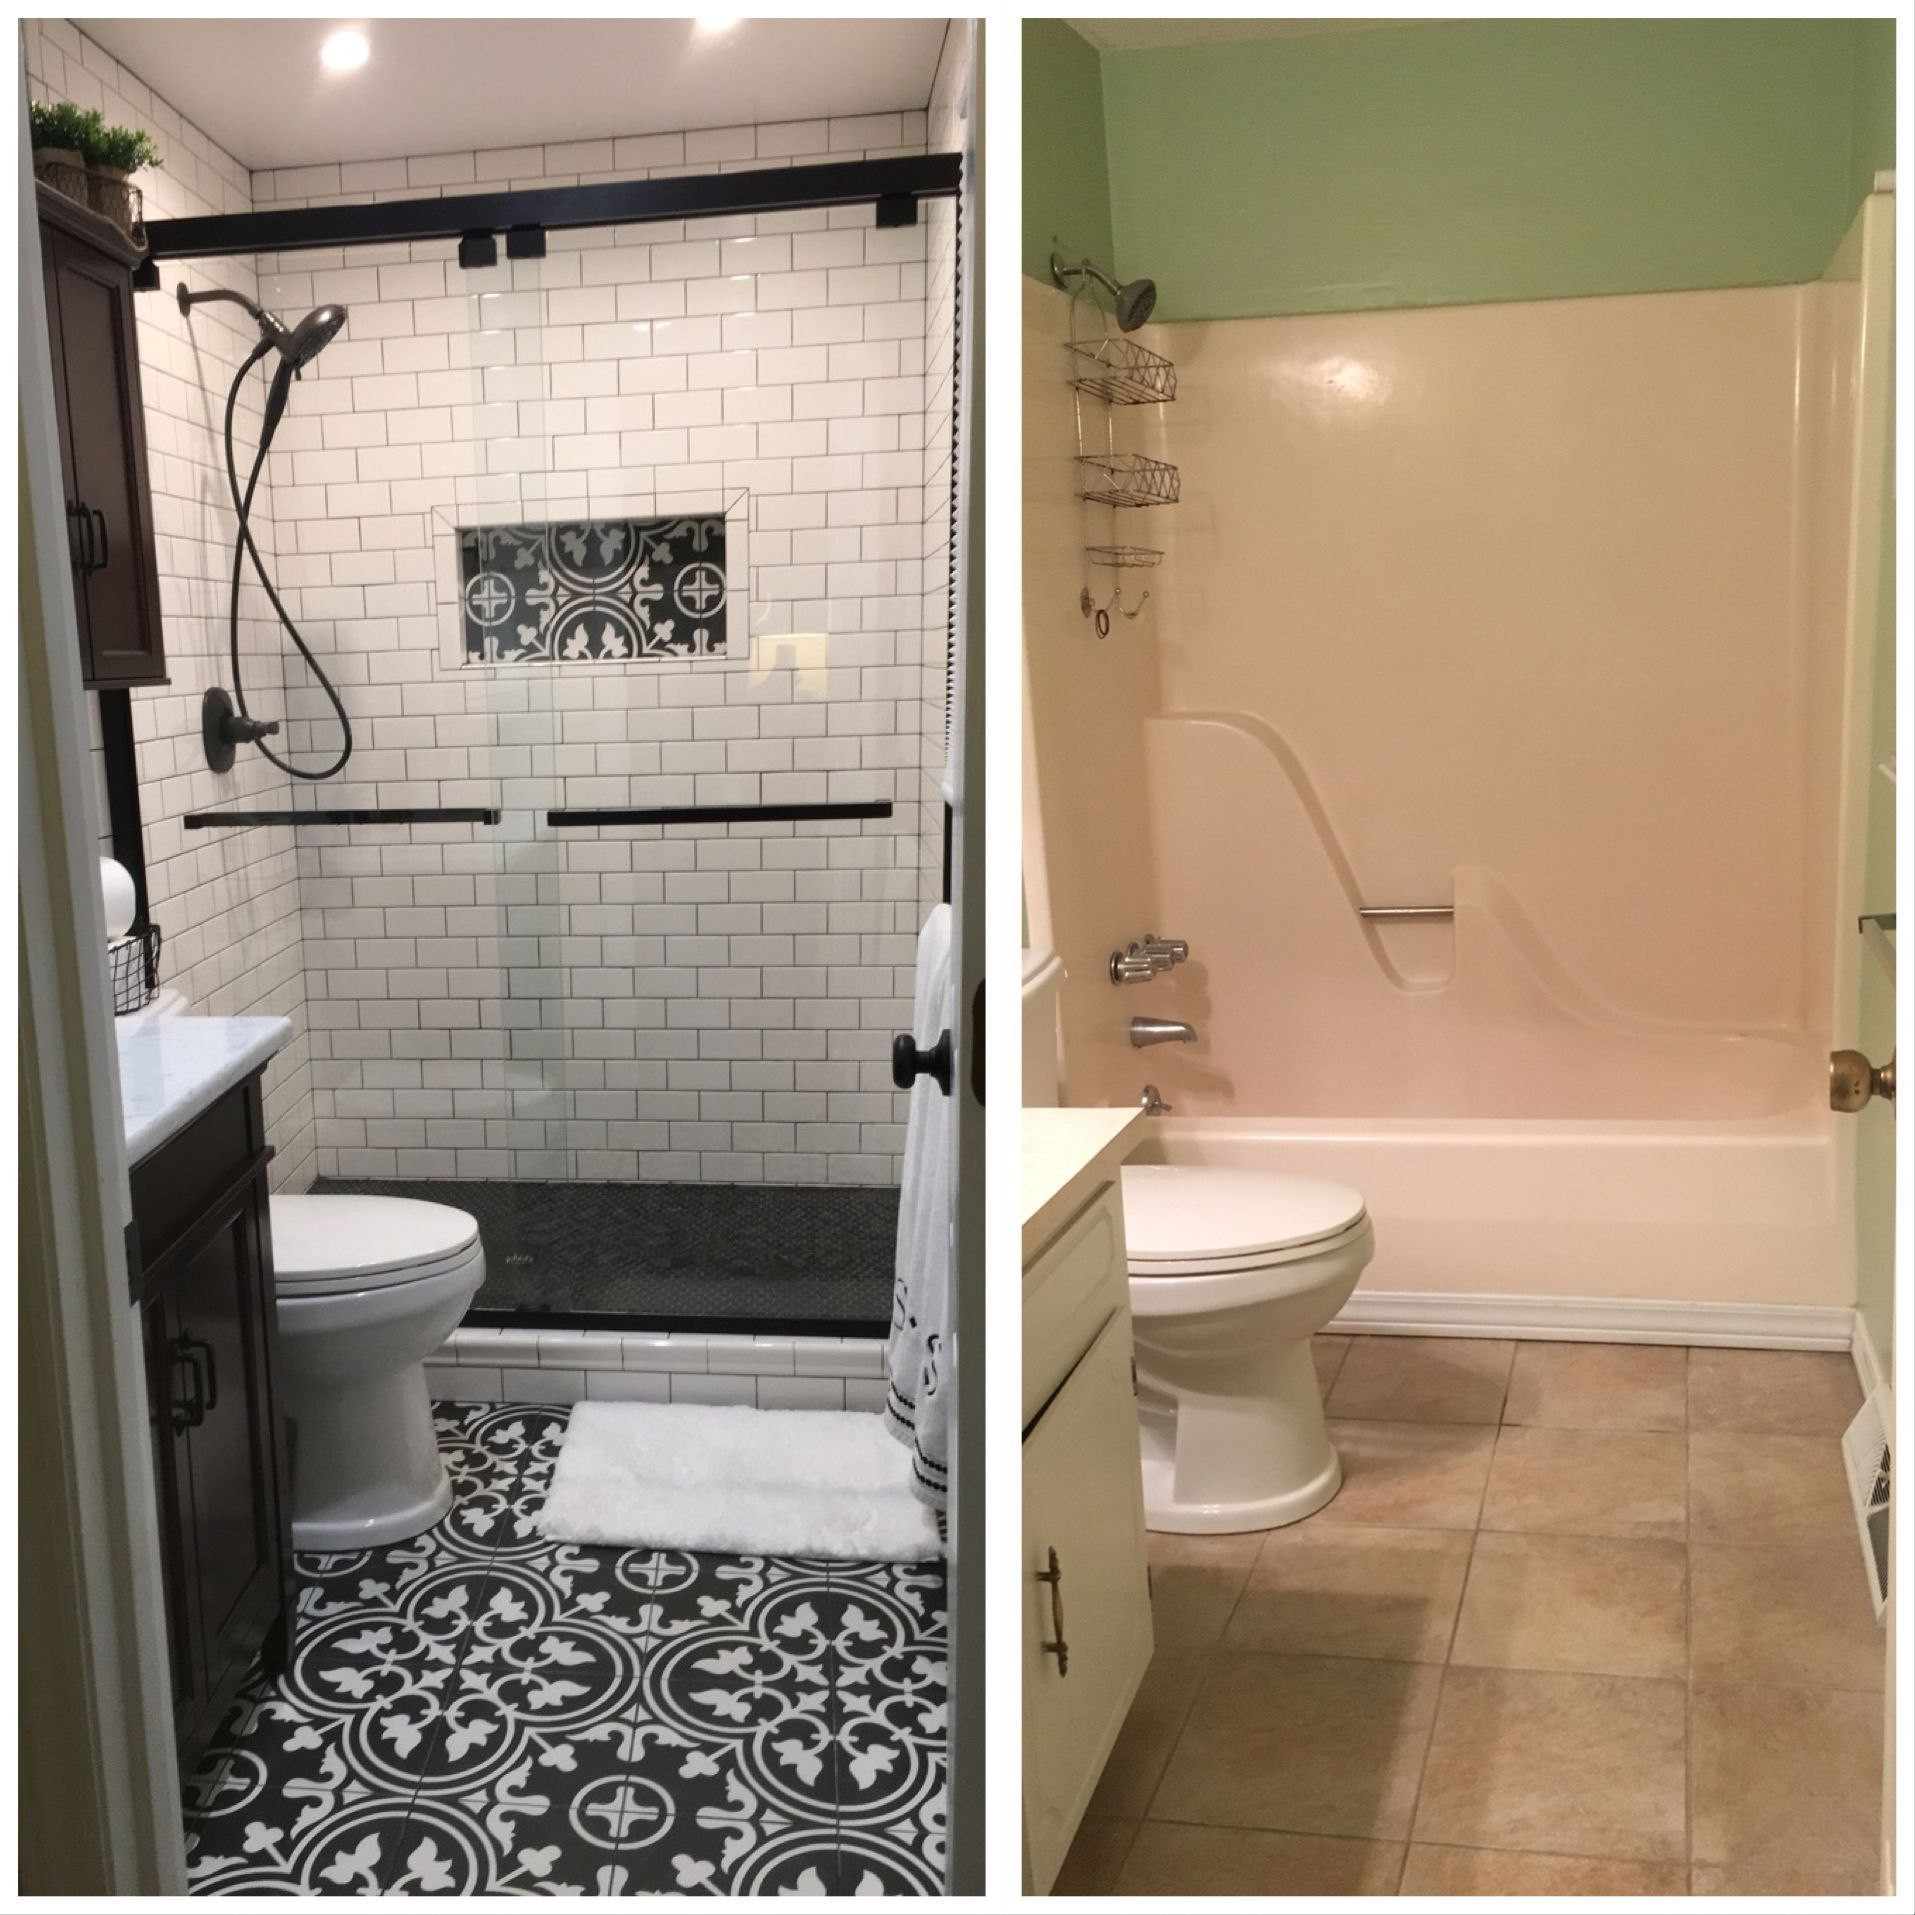 How Much Does It Cost To Redo A Very Small Bathroom